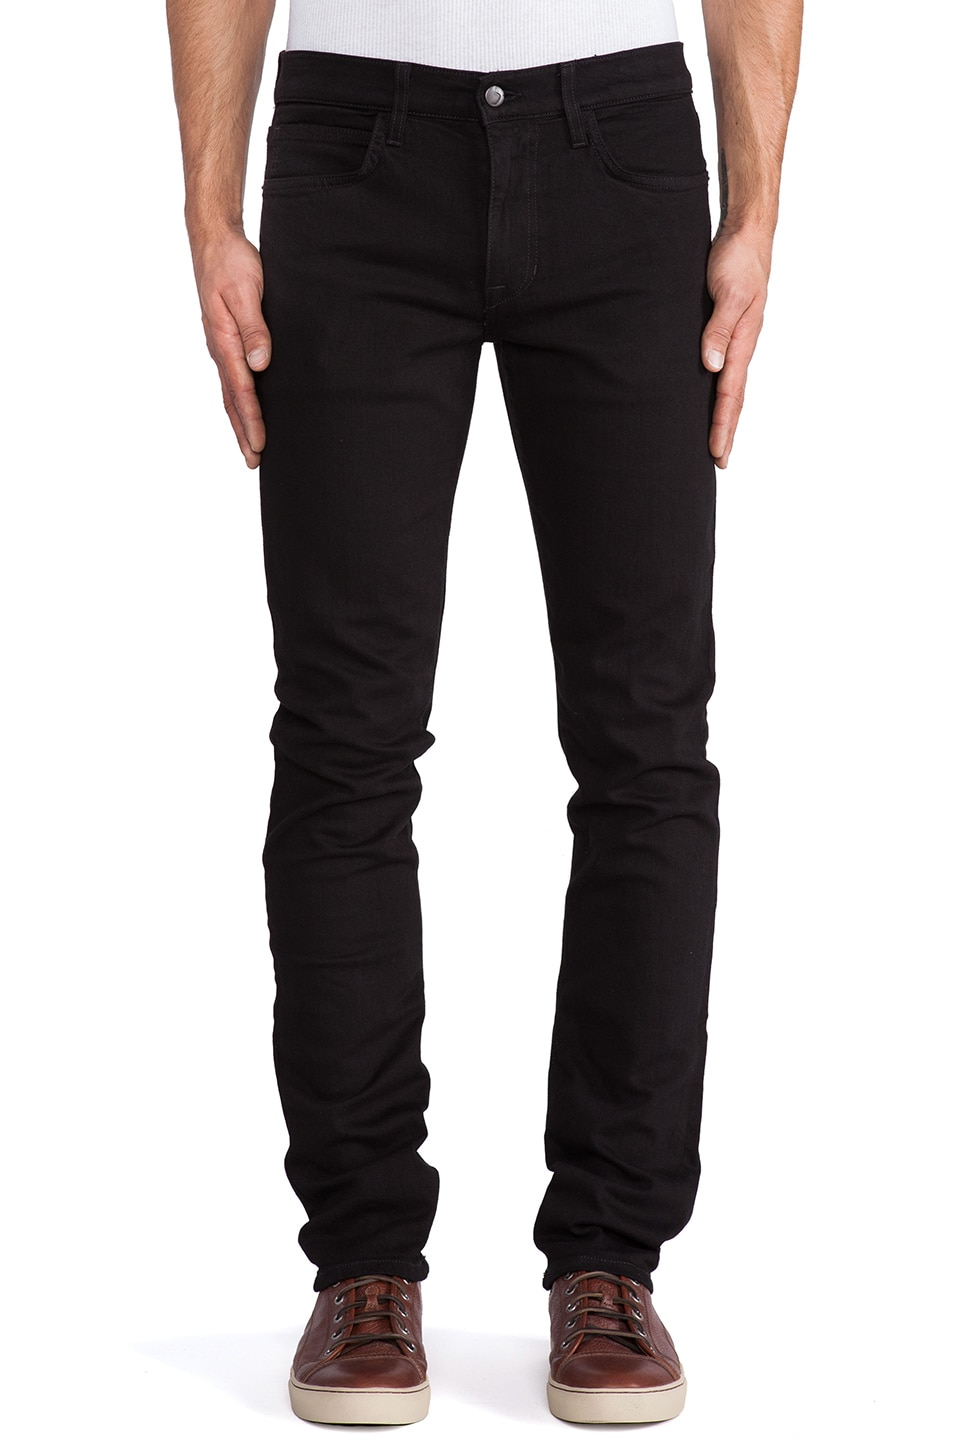 Joe's Jeans Slim Fit in Jet Black